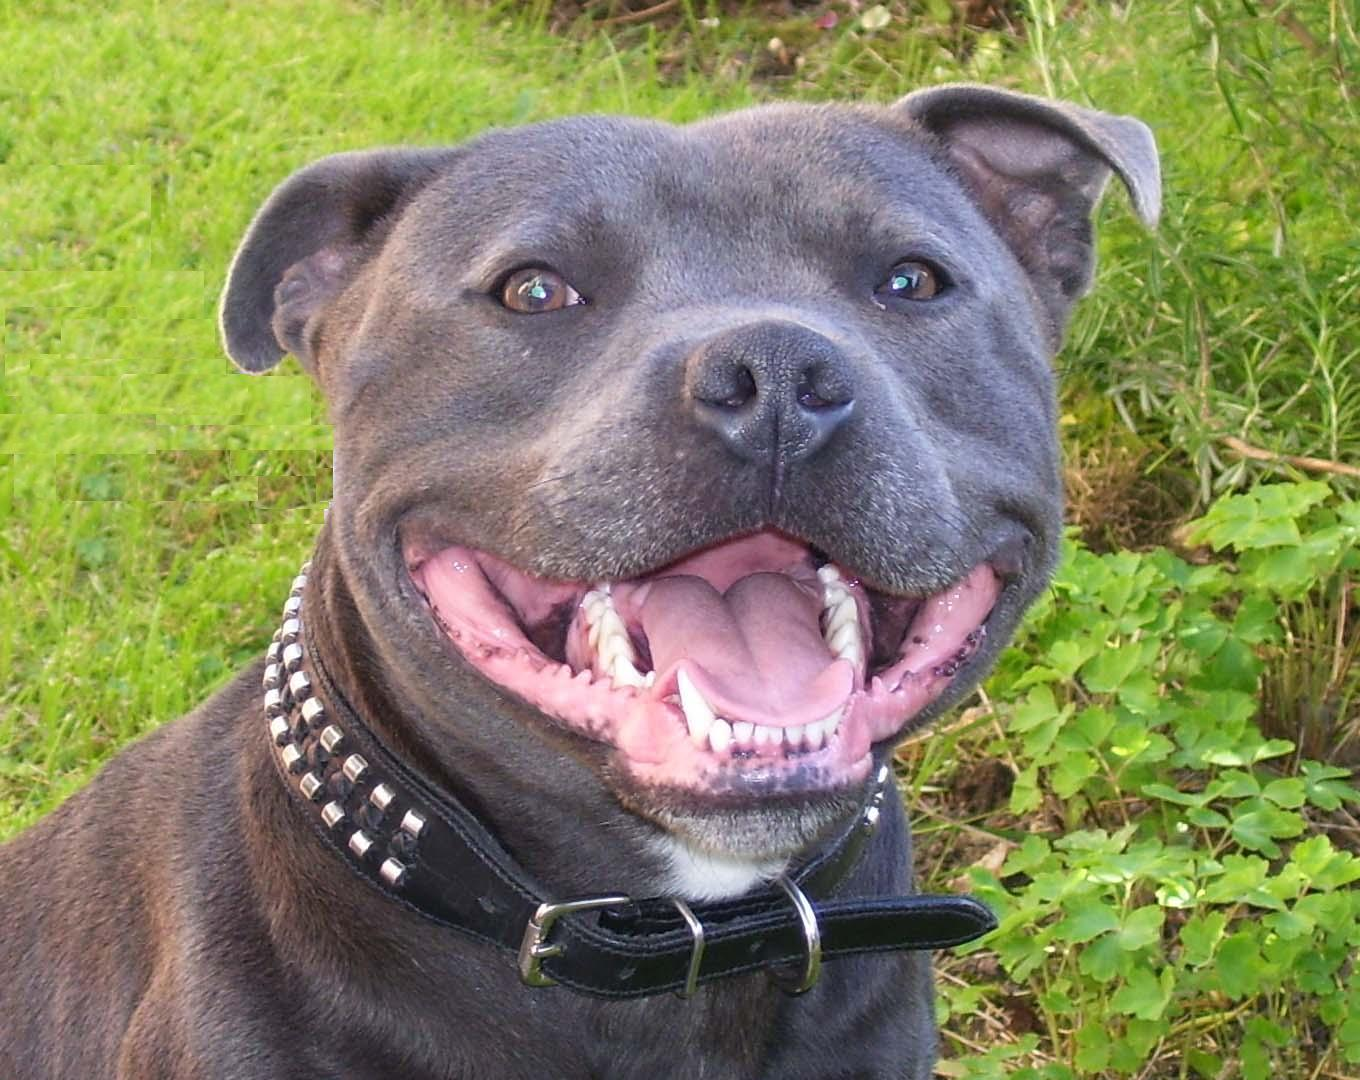 Staffordshire Bull Terrier dog face wallpaper